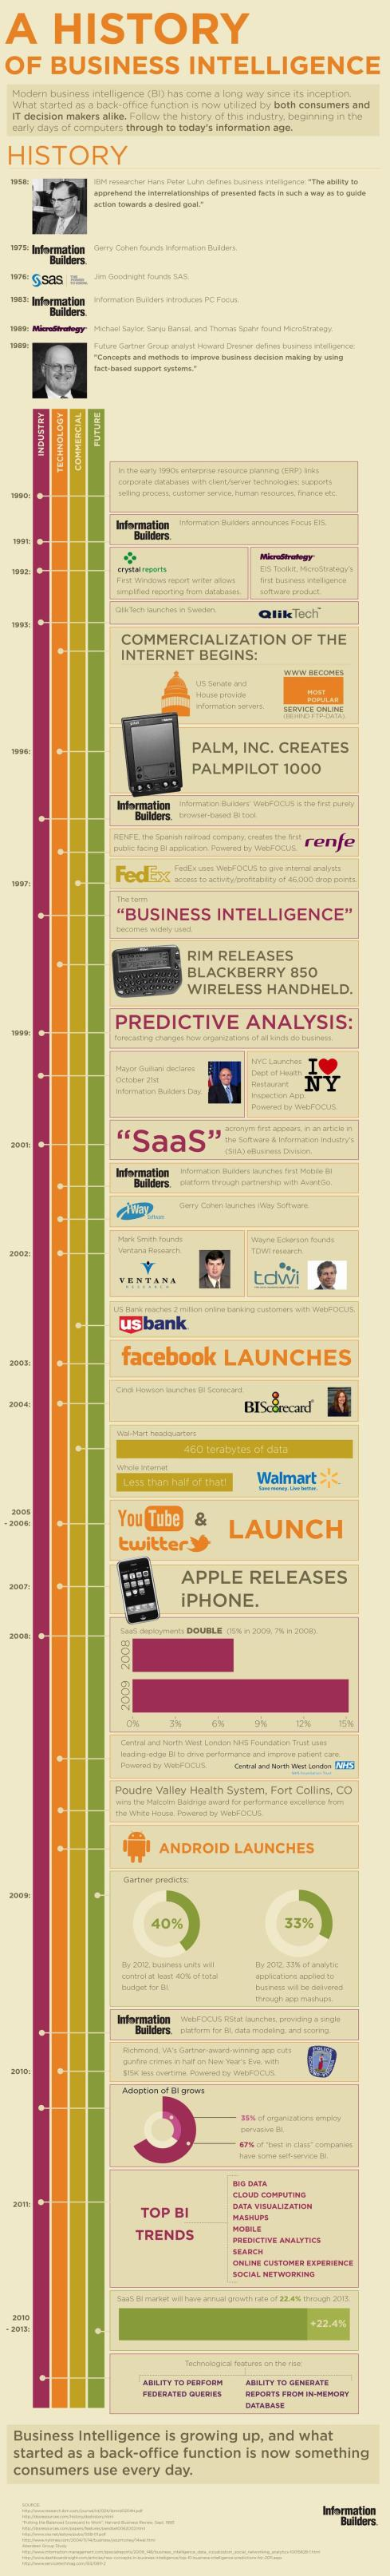 A History of Business Intelligence